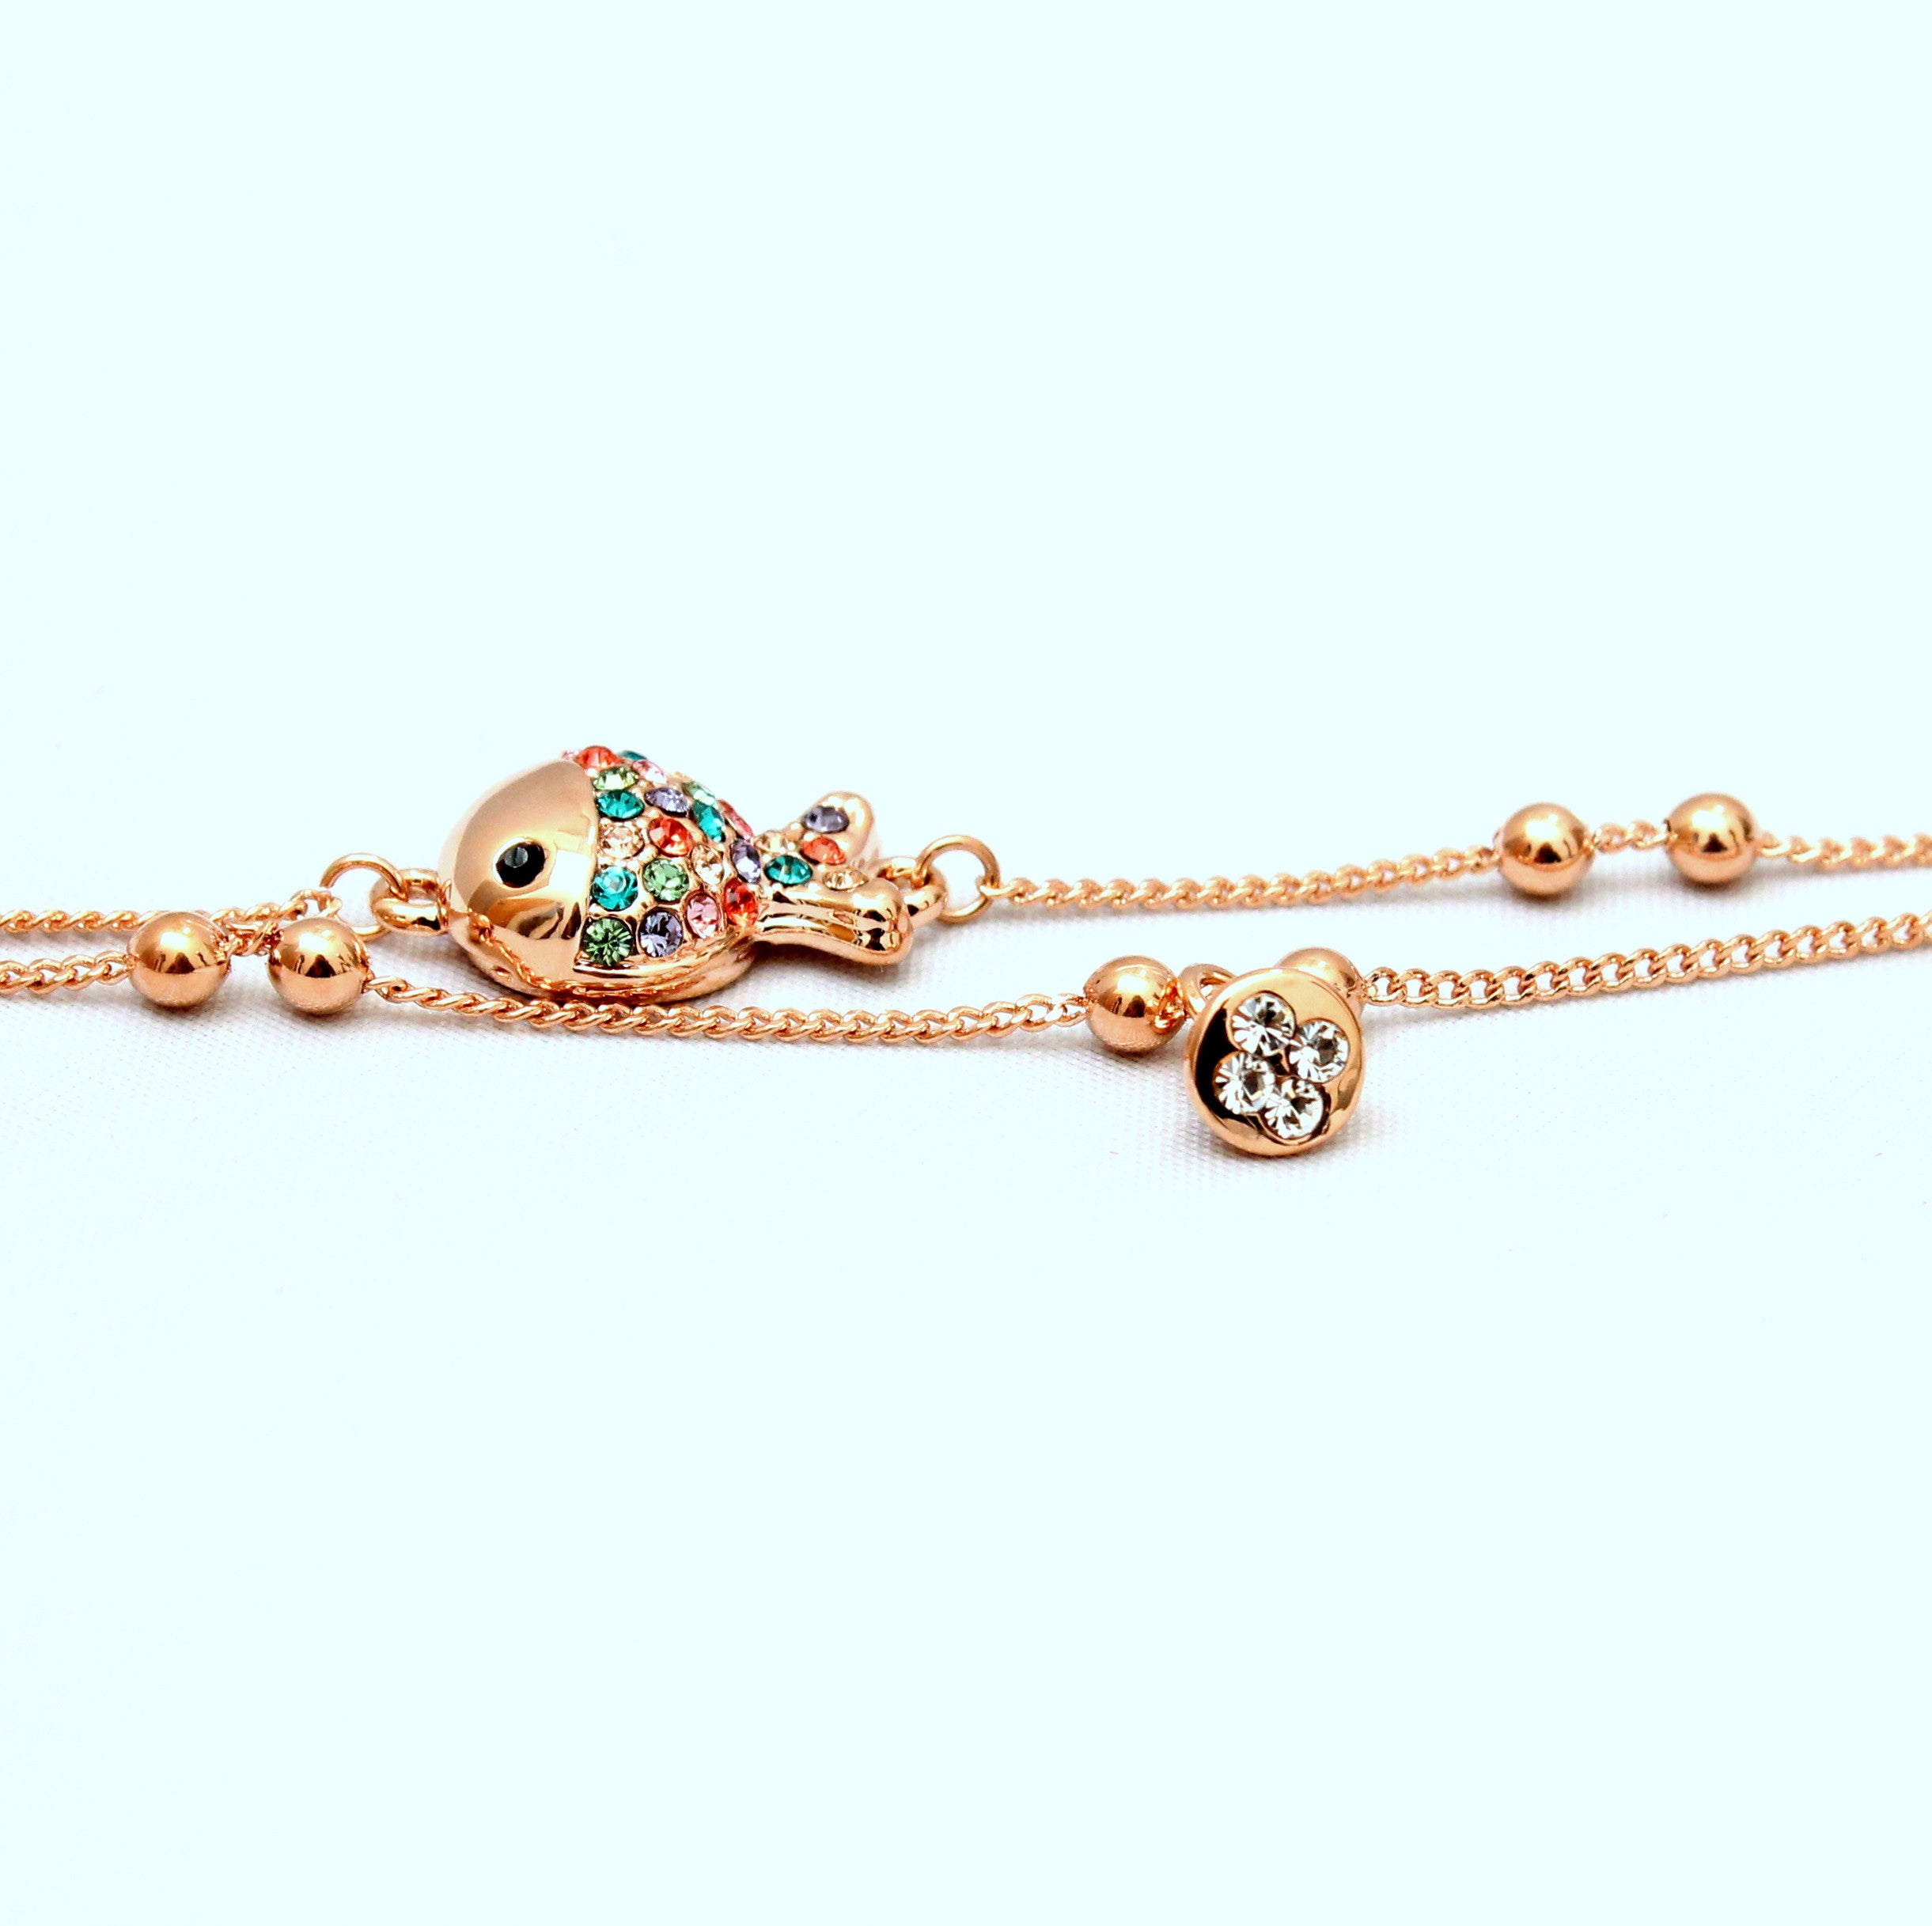 Discus - Rose gold plated with crystals